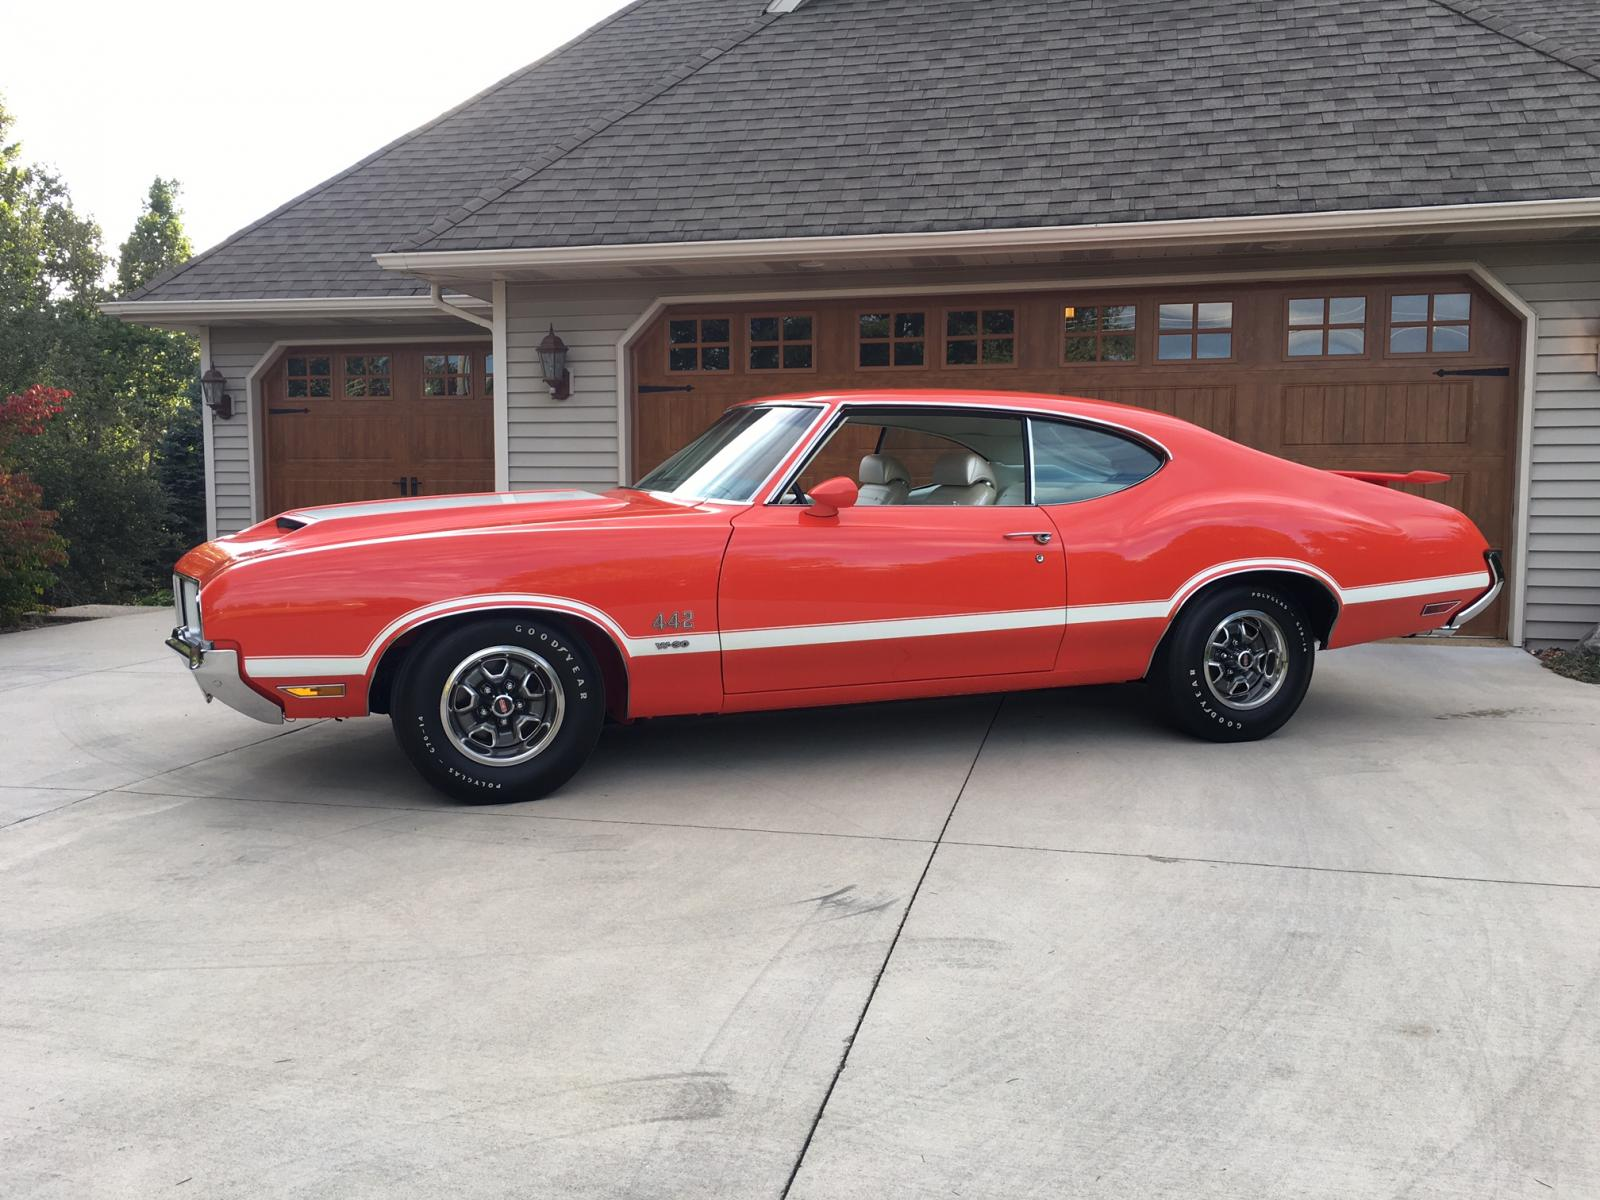 Bought An Old School Muscle Car - Camaro5 Chevy Camaro Forum ...